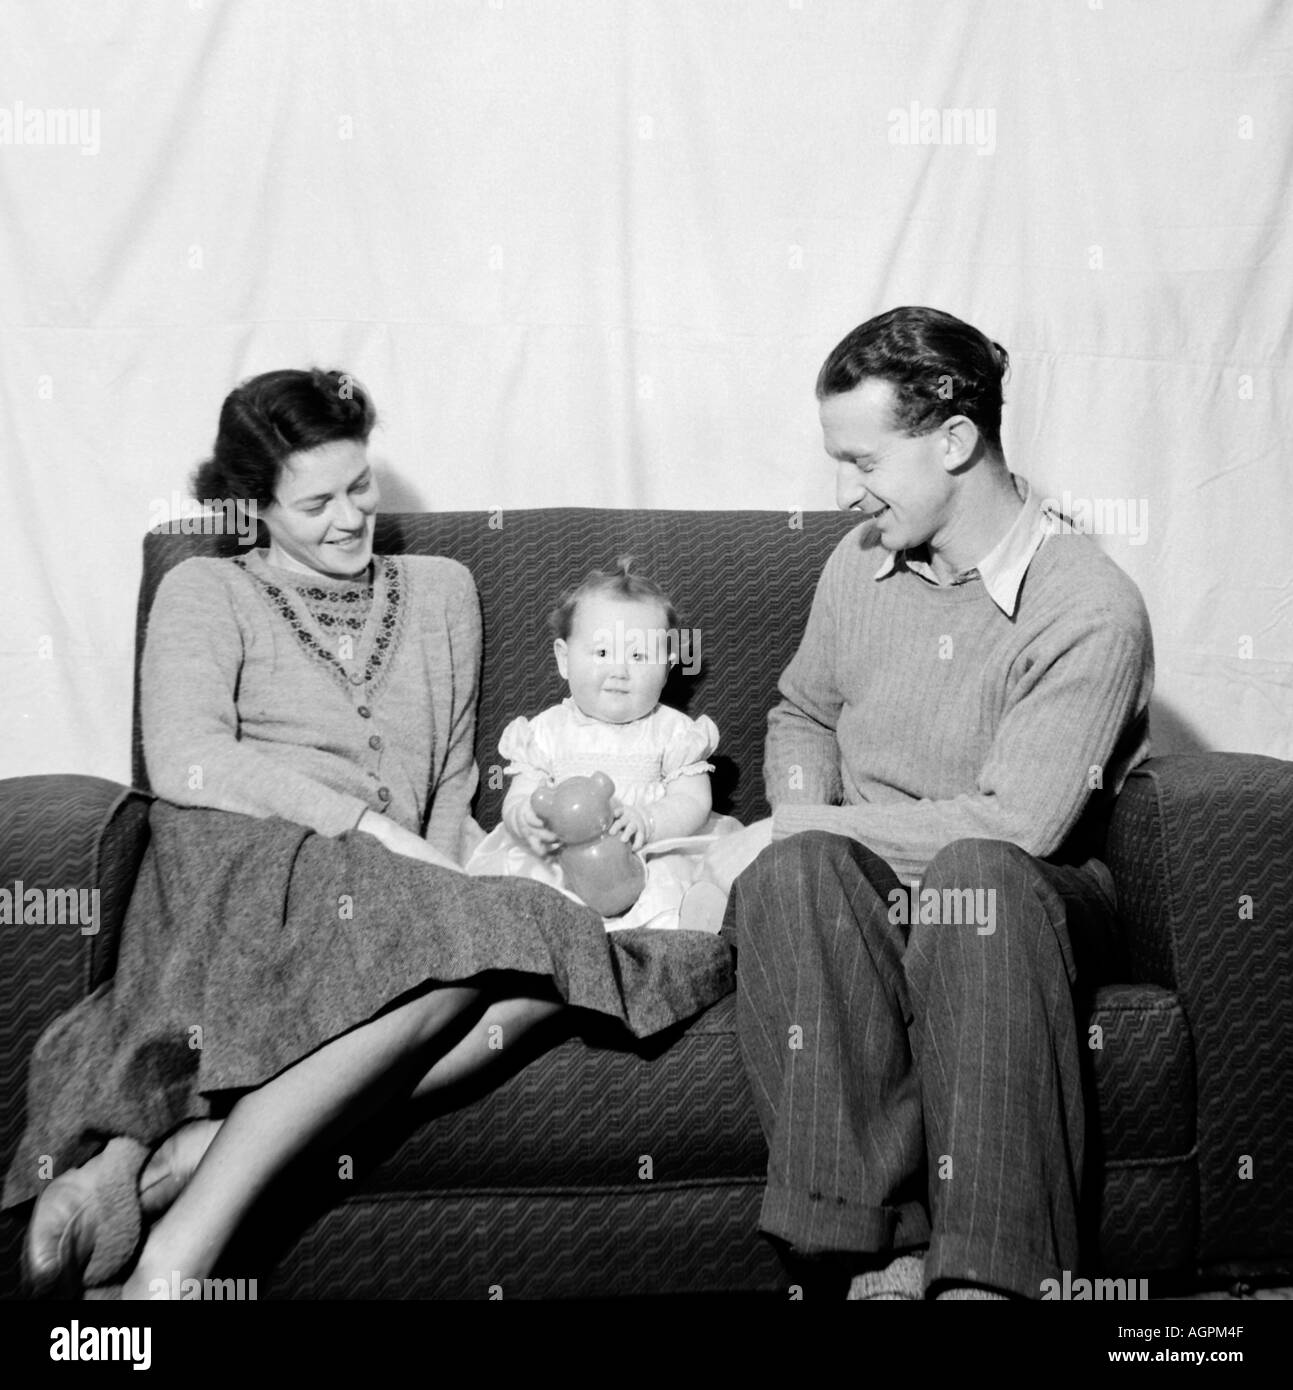 OLD VINTAGE FAMILY SNAPSHOT PHOTOGRAPH OF MOTHER AND FATHER RELAXING AND PLAYING WITH BABY DAUGHTER ON SOFA - Stock Image